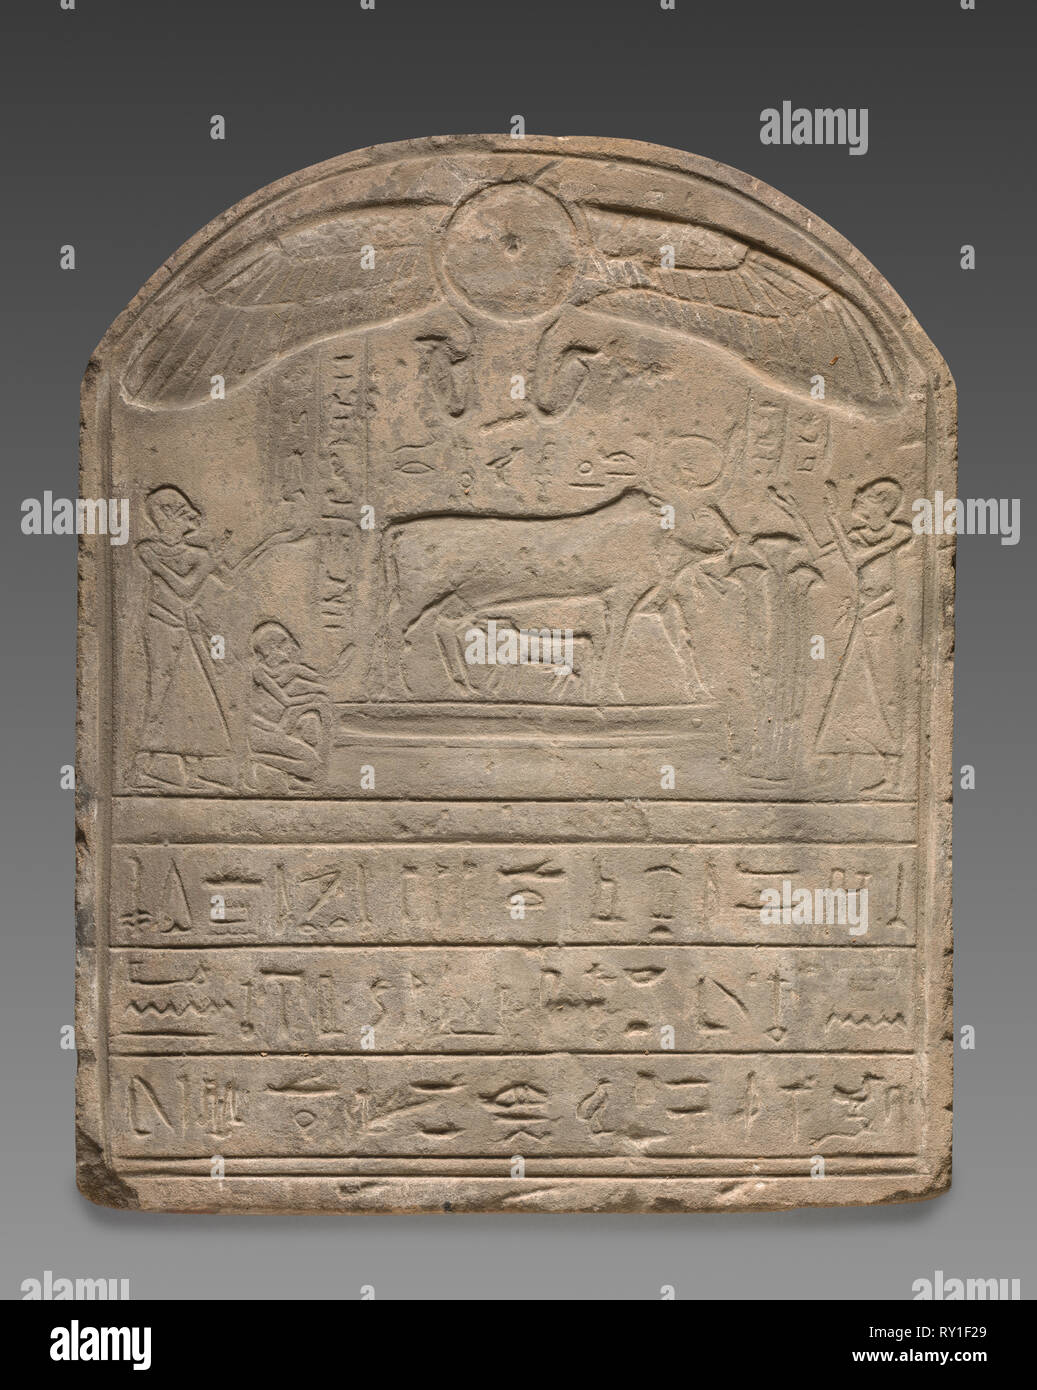 Round-Topped Stele, 332 BC-AD 395. Egypt, Greco-Roman Period or modern forgery. Sandstone; diameter: 9.5 cm (3 3/4 in.); overall: 57.4 x 46.3 x 11 cm (22 5/8 x 18 1/4 x 4 5/16 in - Stock Image